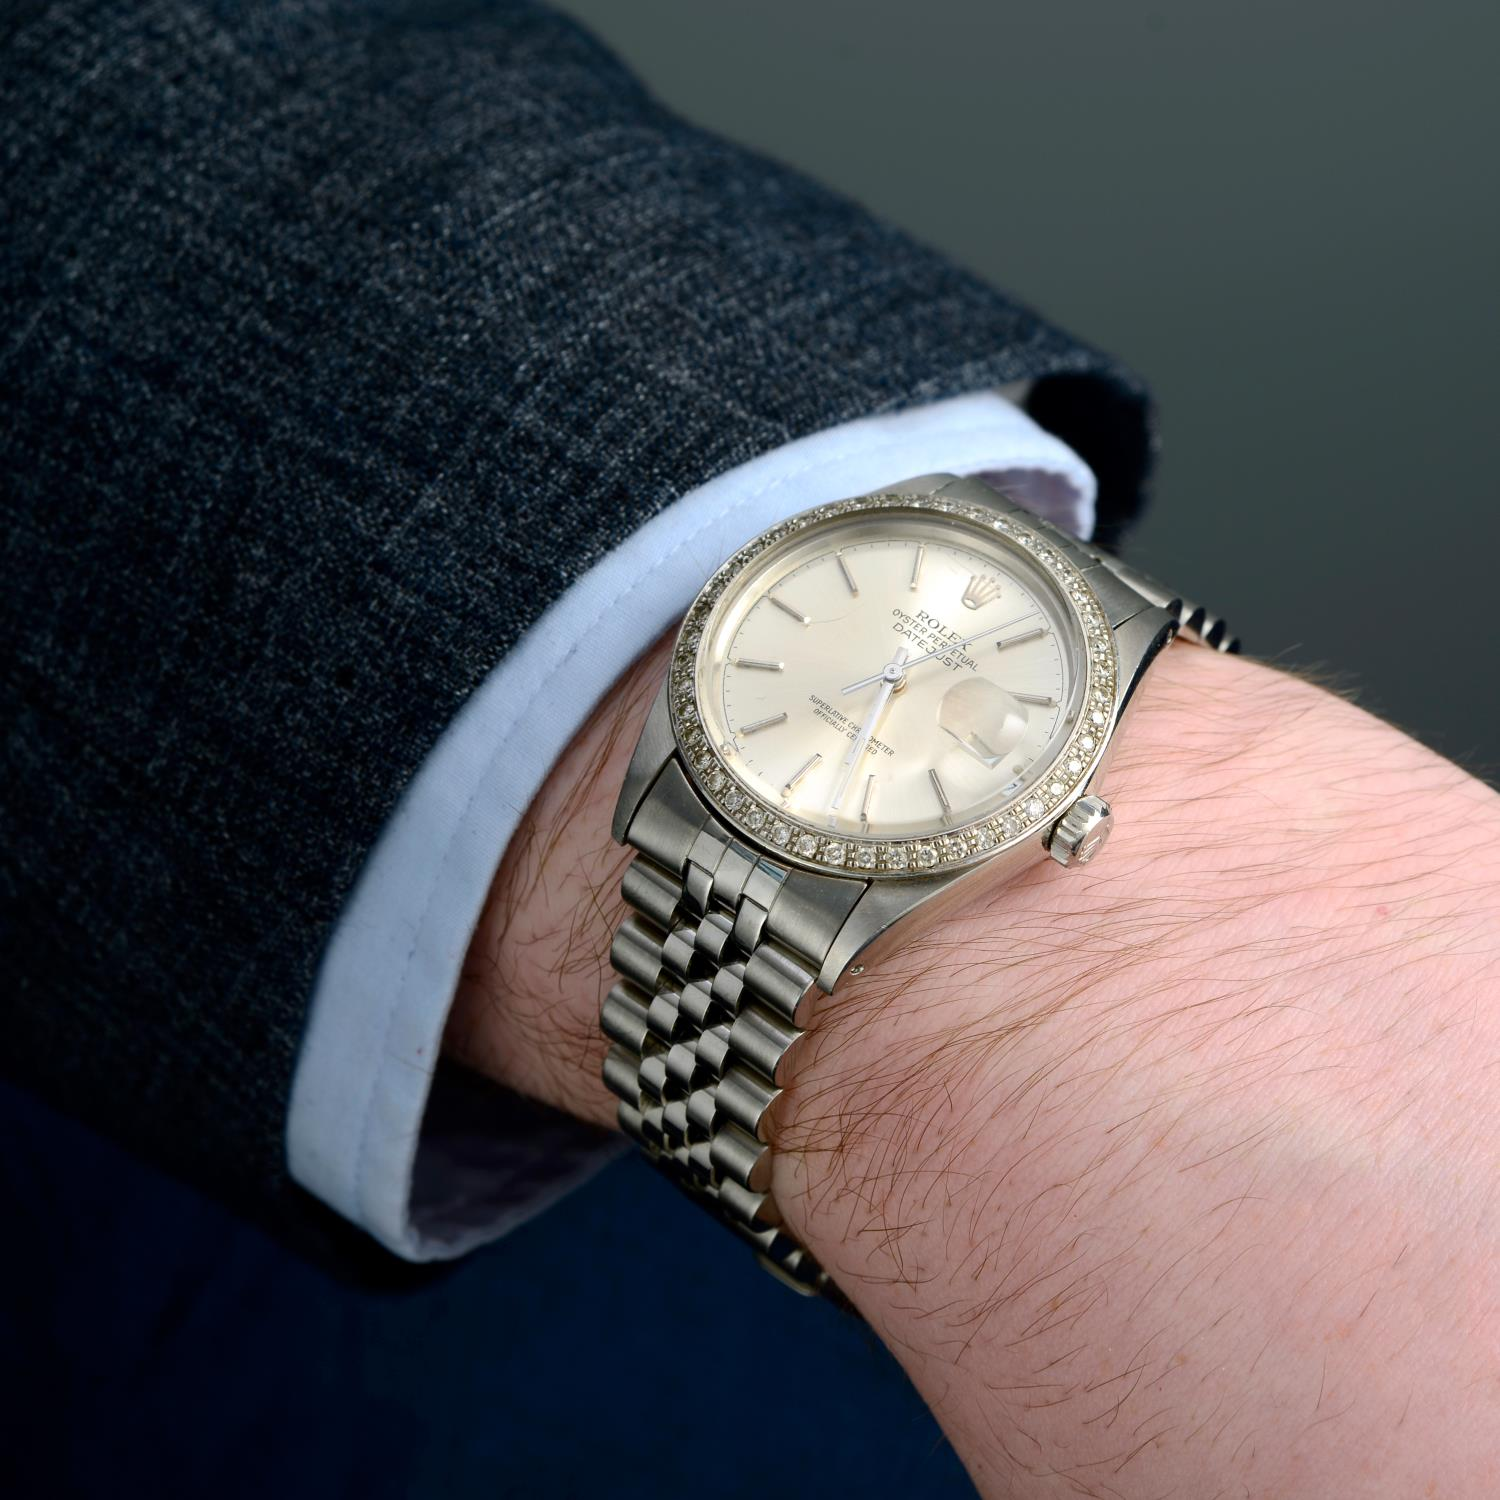 ROLEX - an Oyster Perpetual Datejust bracelet watch. - Image 3 of 5